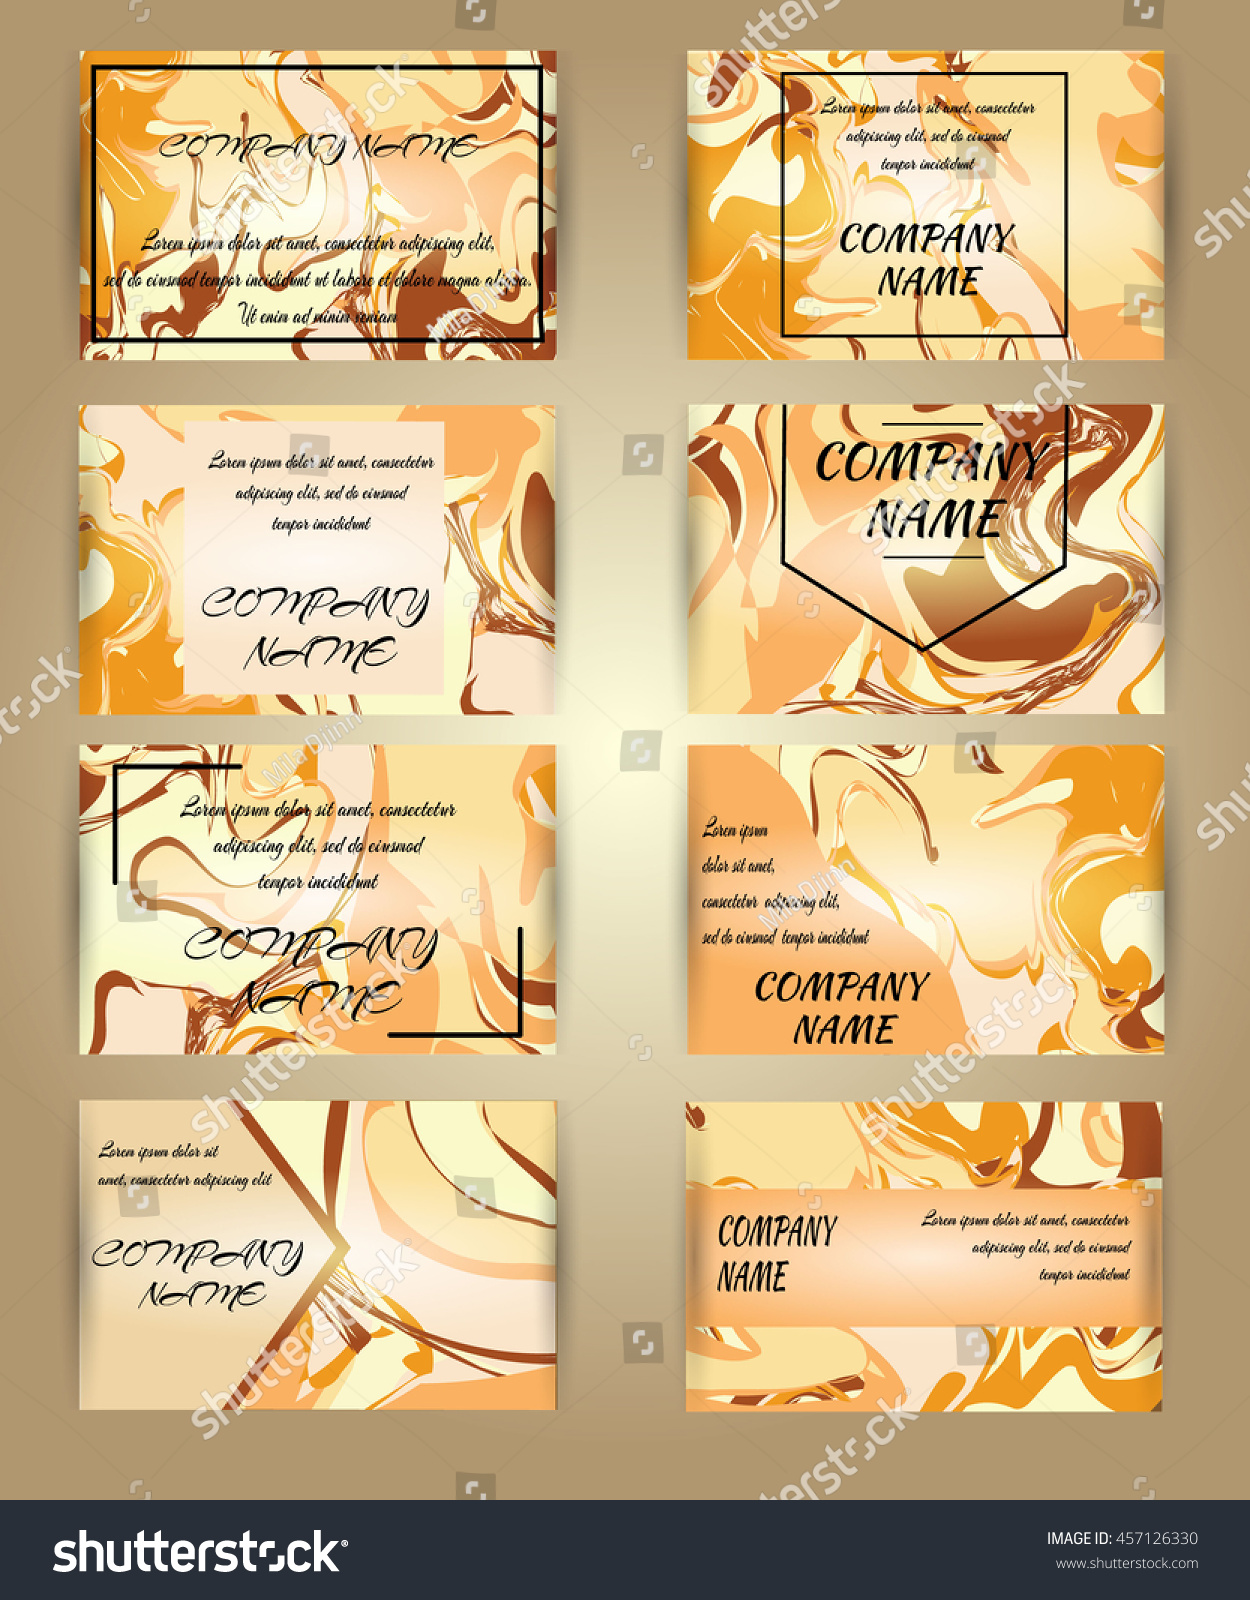 Business Cards For Restaurants Image collections - Free Business Cards